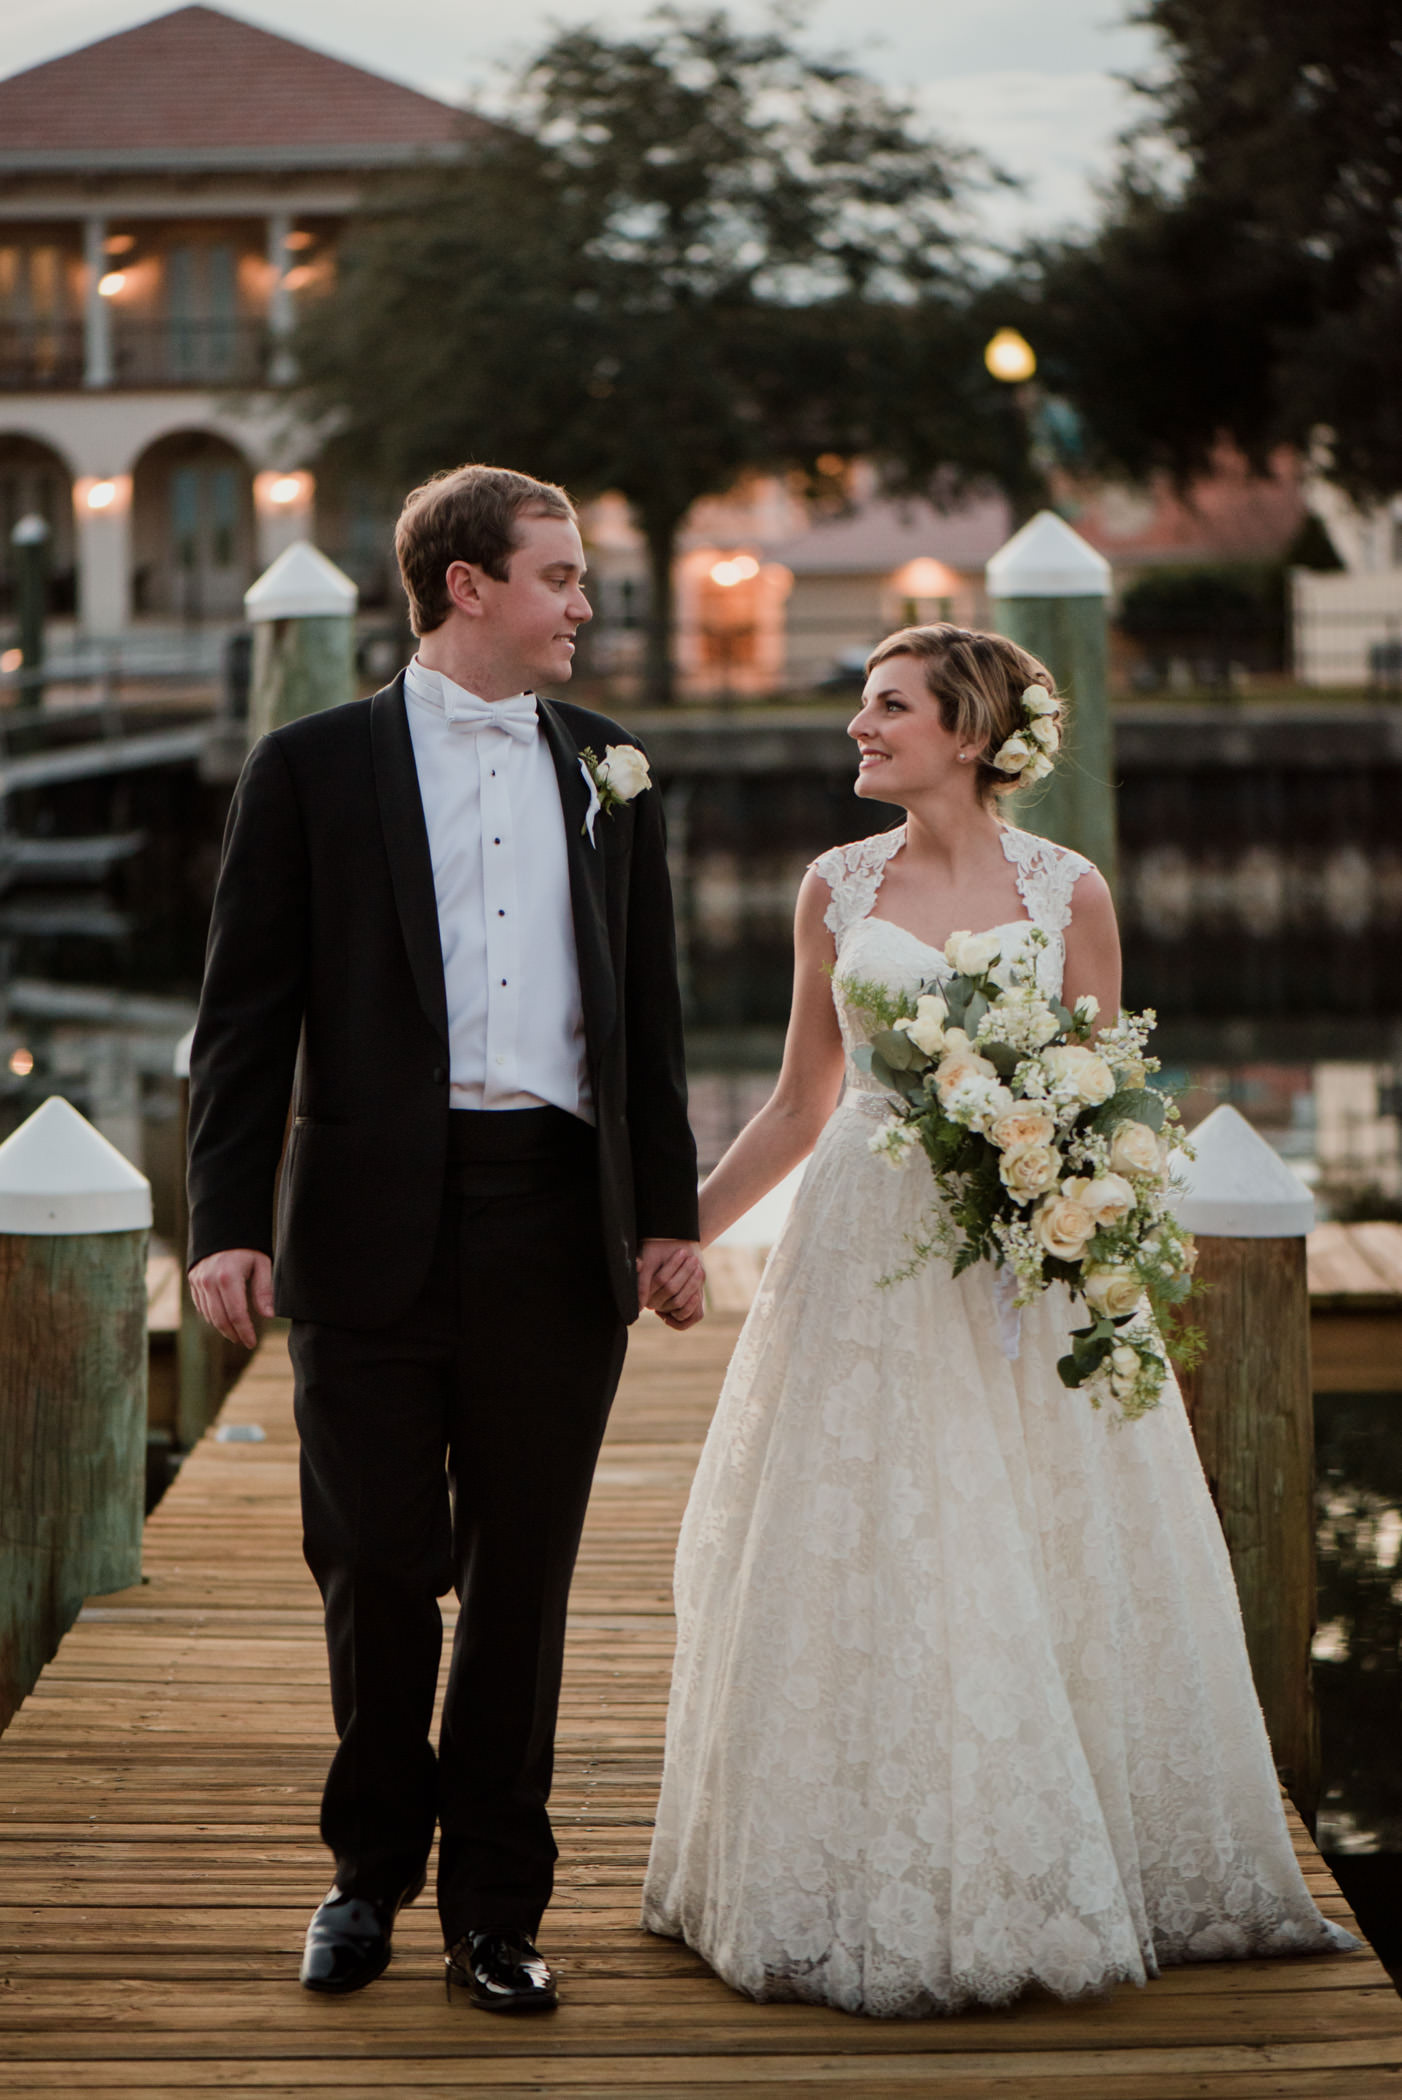 Bride & Groom Portraits at Palafox Wharf Waterfront Venue Pensacola, FL